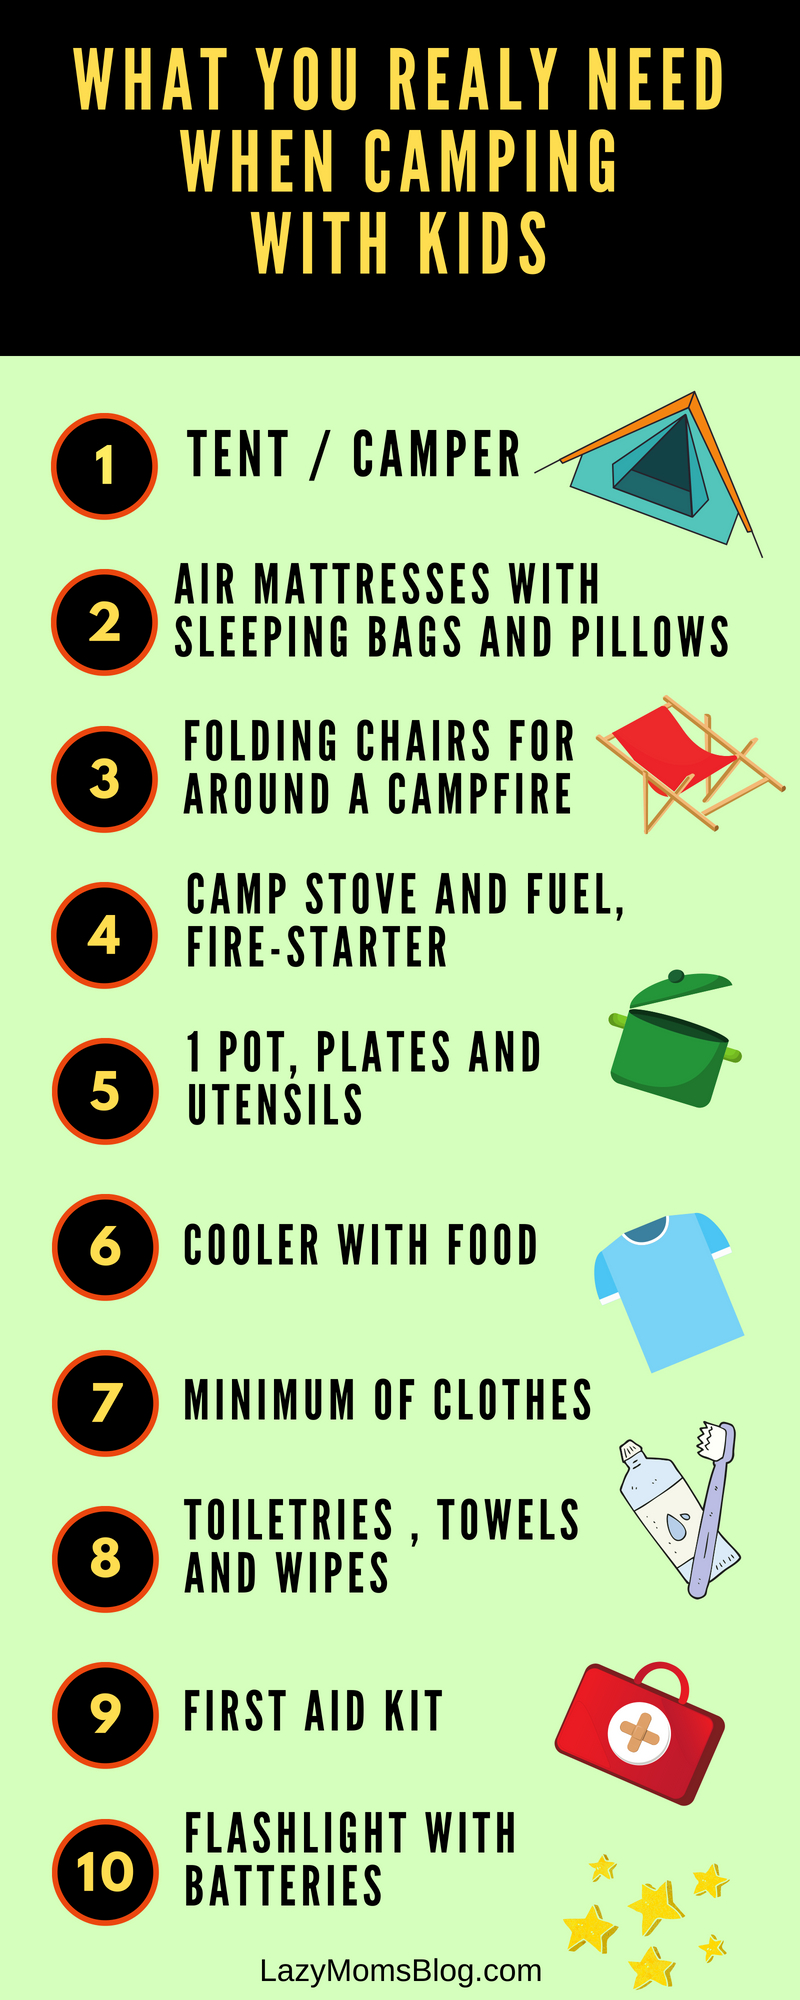 Here's what you REALLY need when camping with kids - the absolute minimum, and all that really is needed